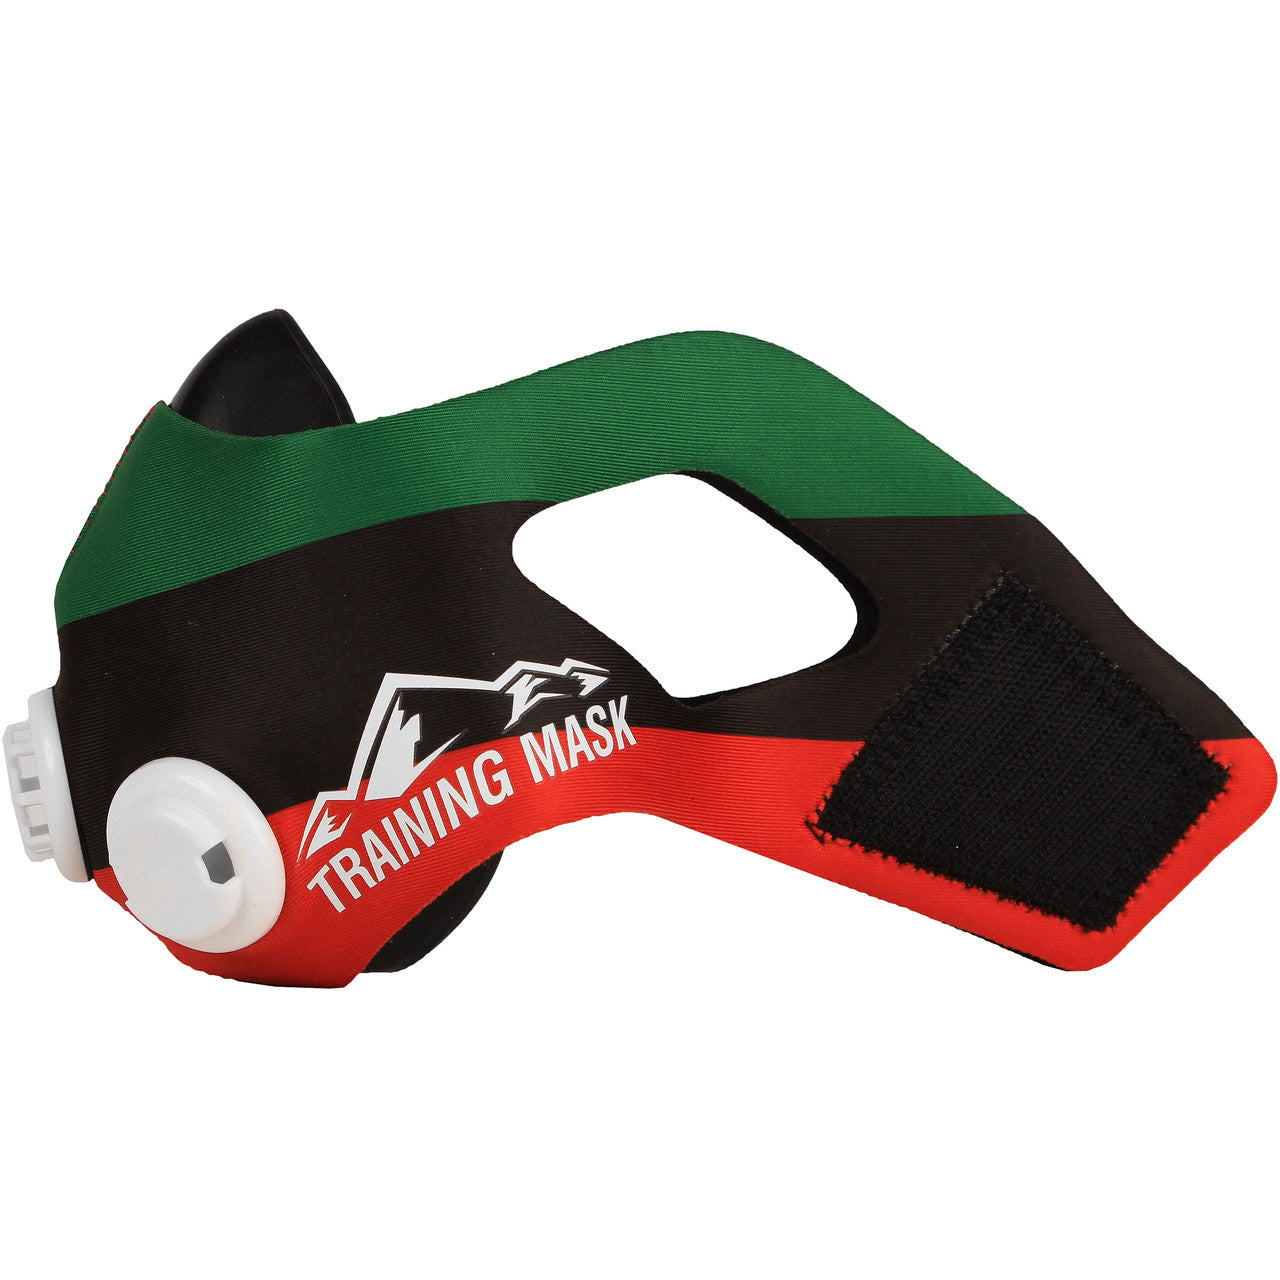 Training Mask 2.0 Afreakan Sleeve